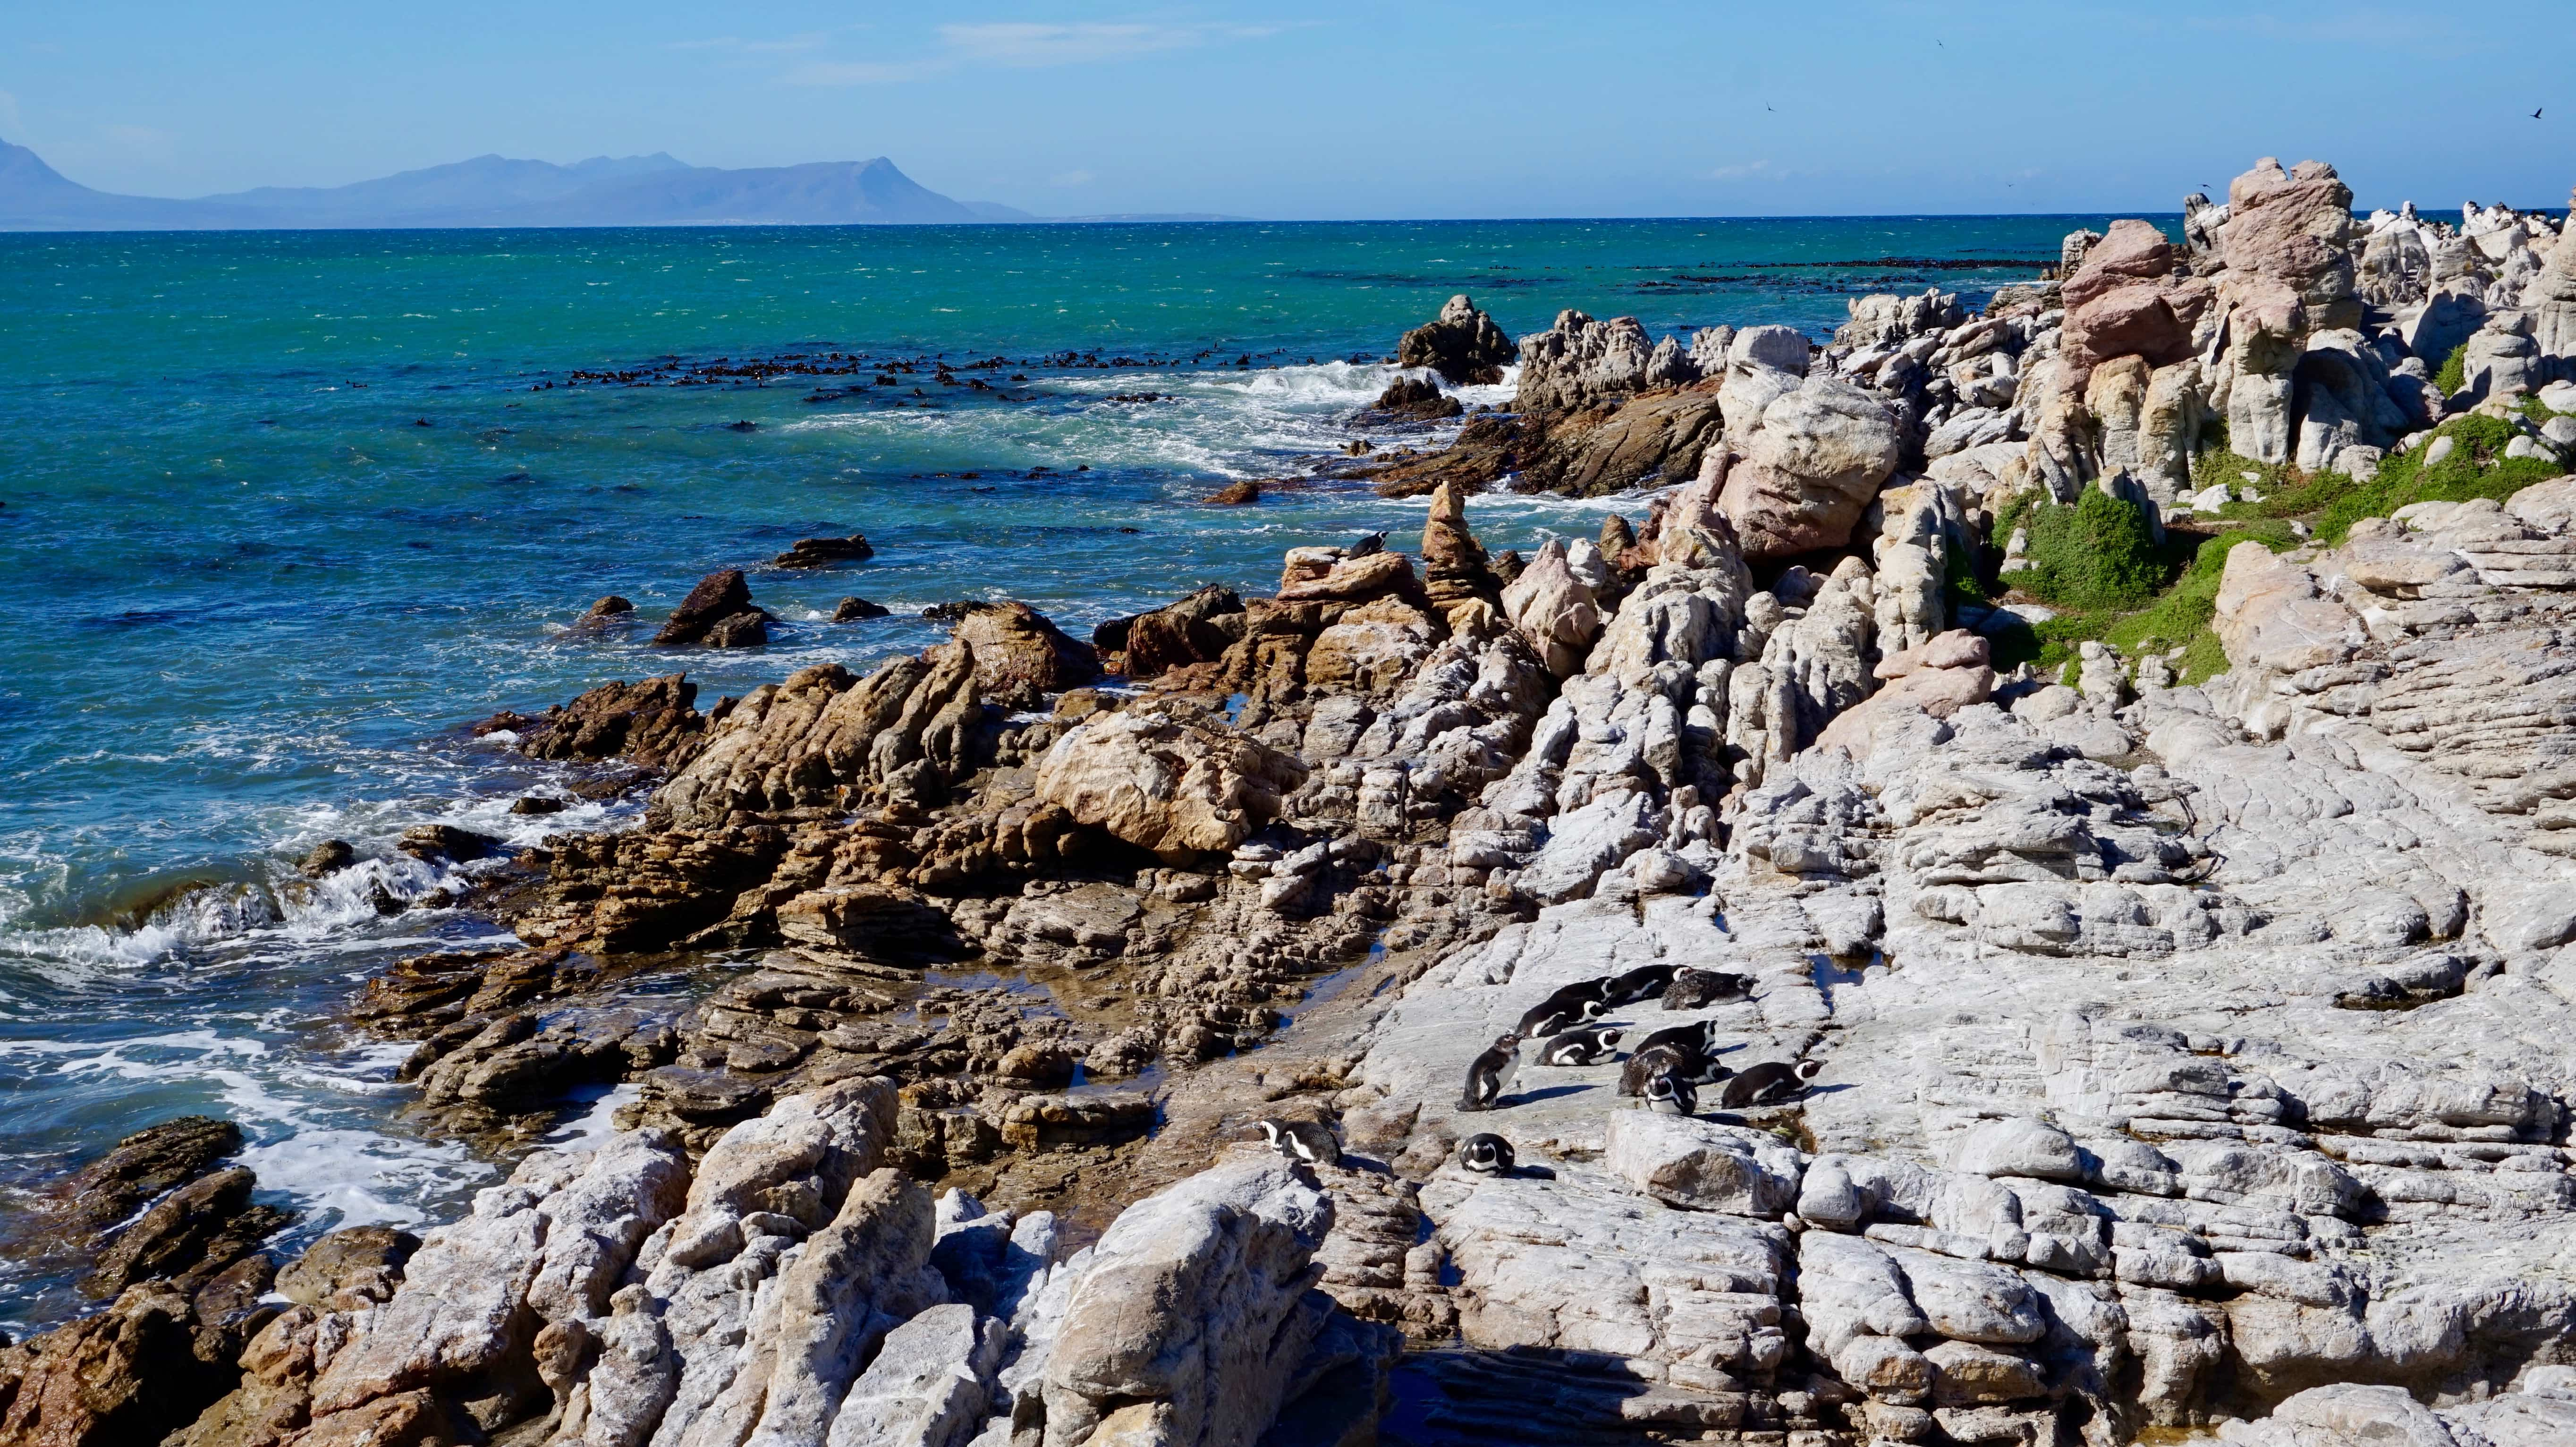 Betty's Bay, first stop on our Garden Route road trip itinerary